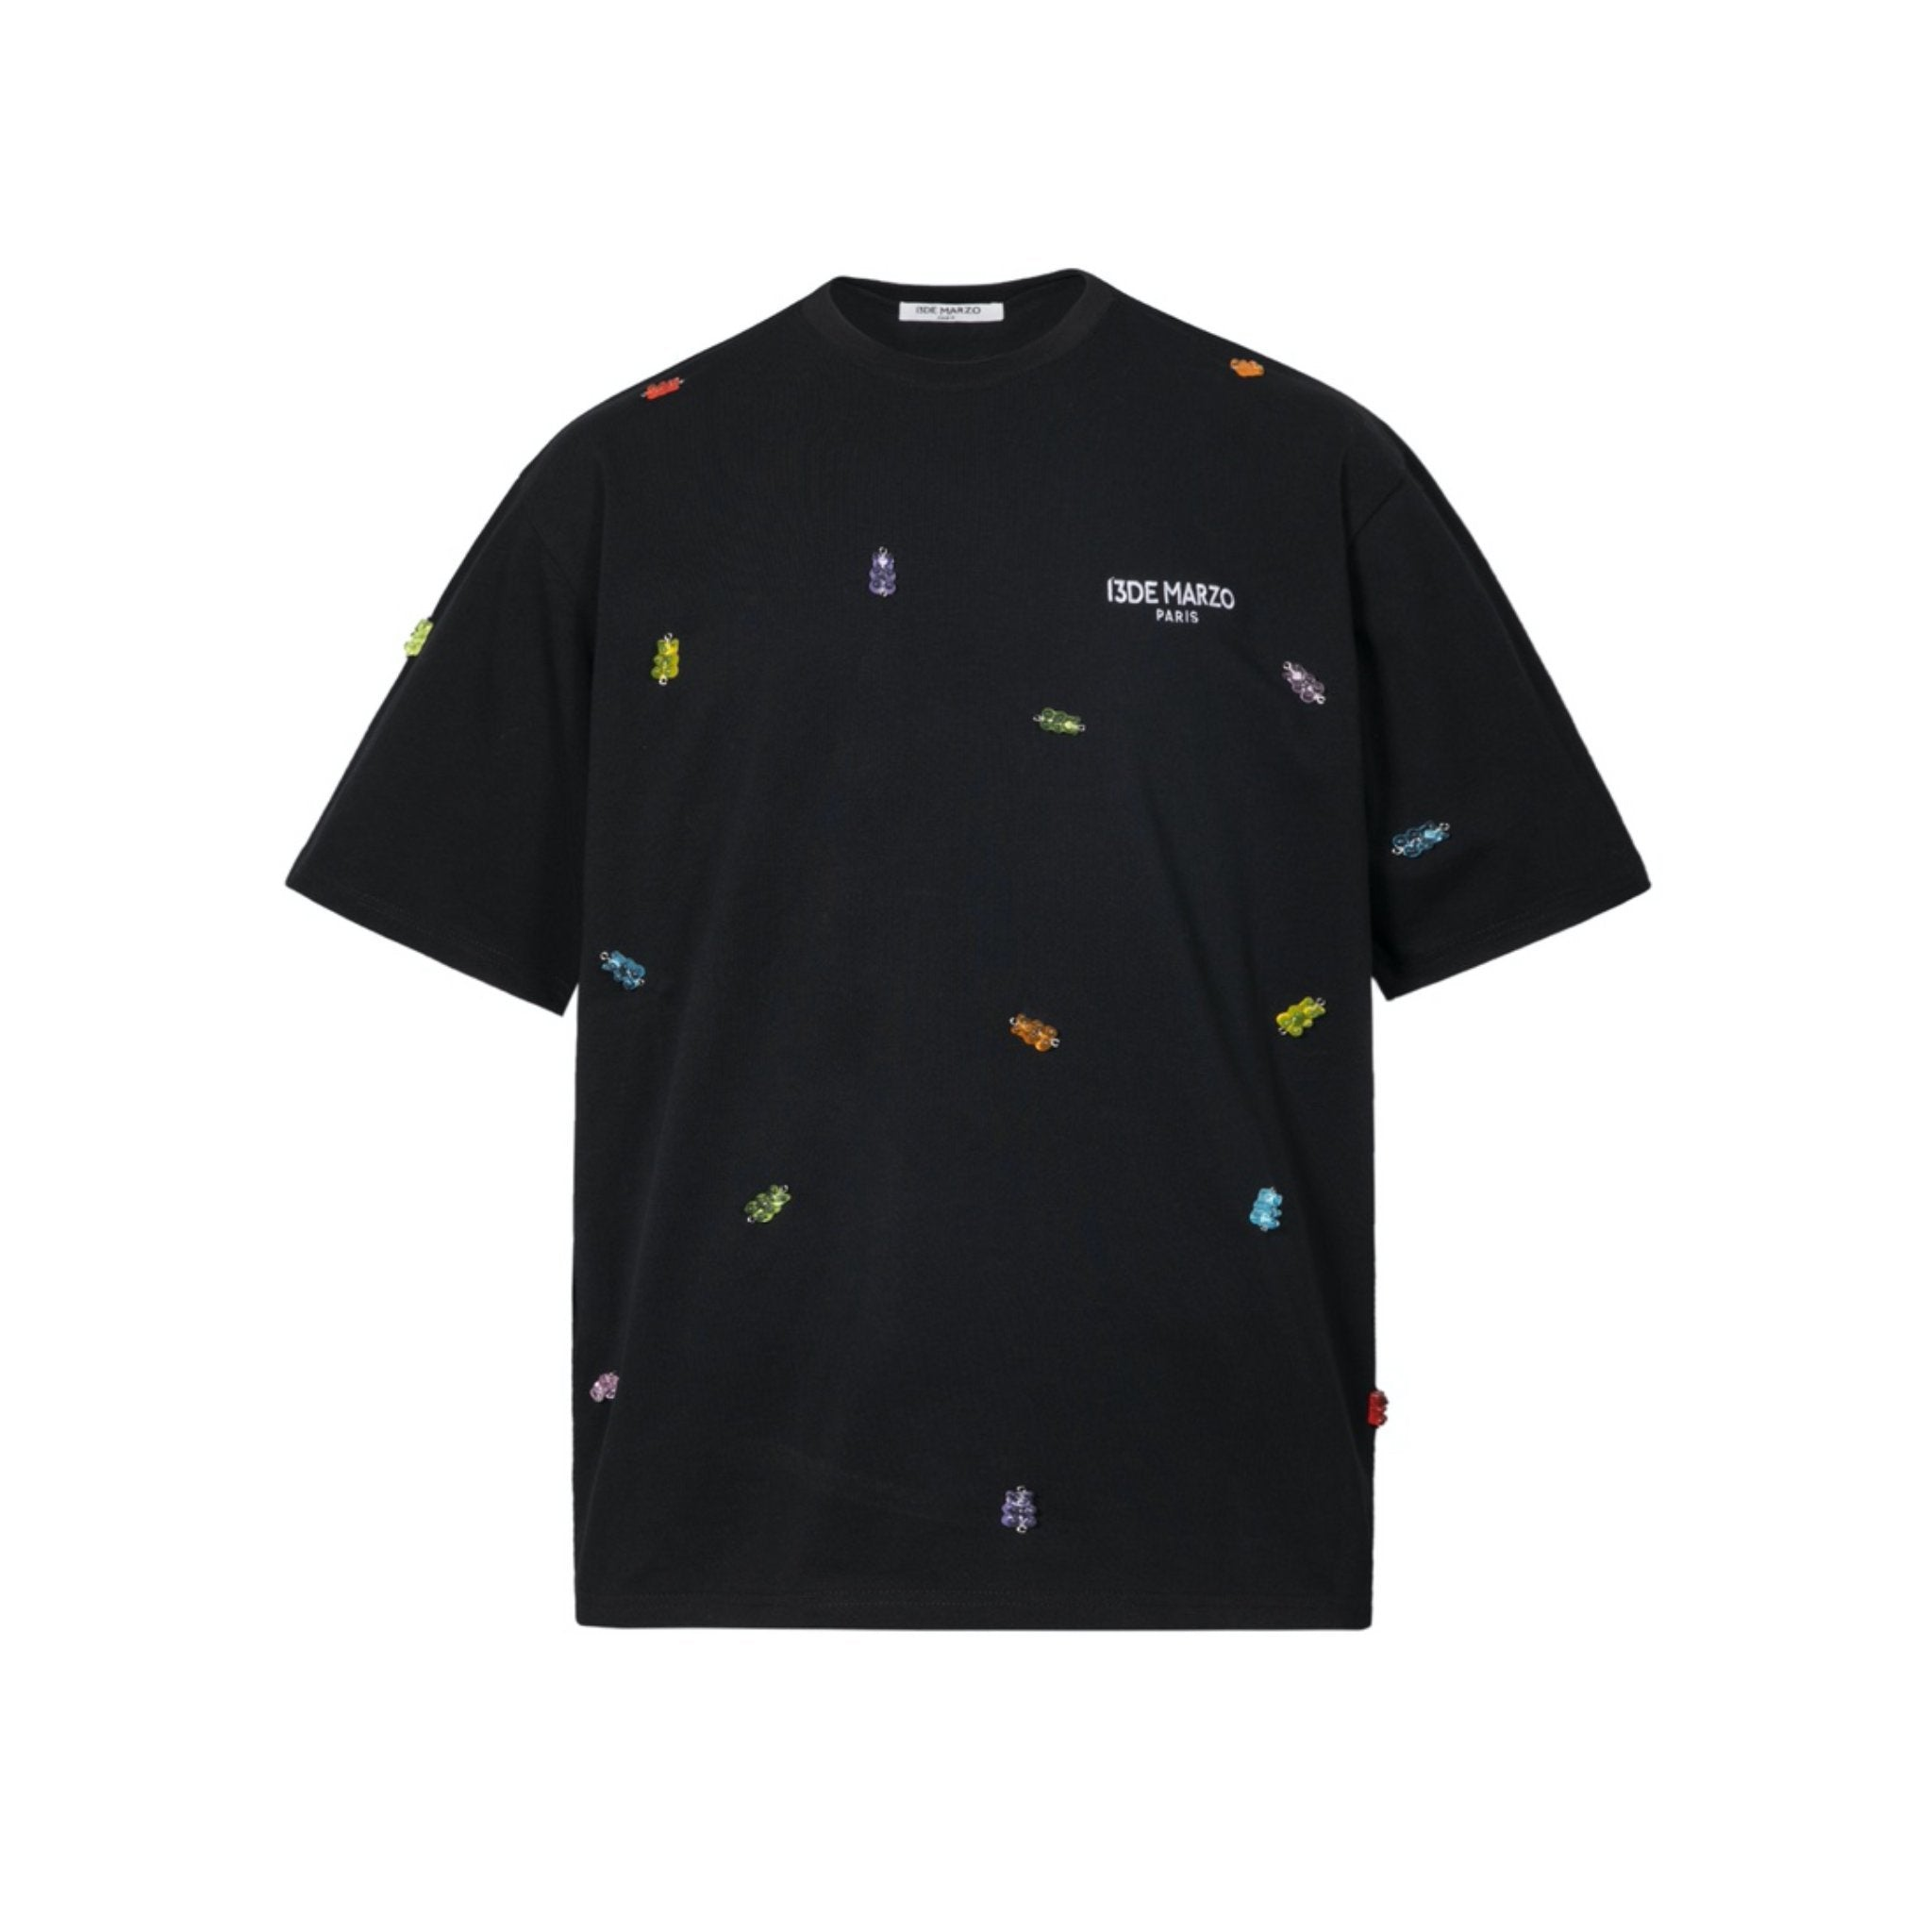 13 DE MARZO Gummy Bears Cover Tee Black | MADA IN CHINA